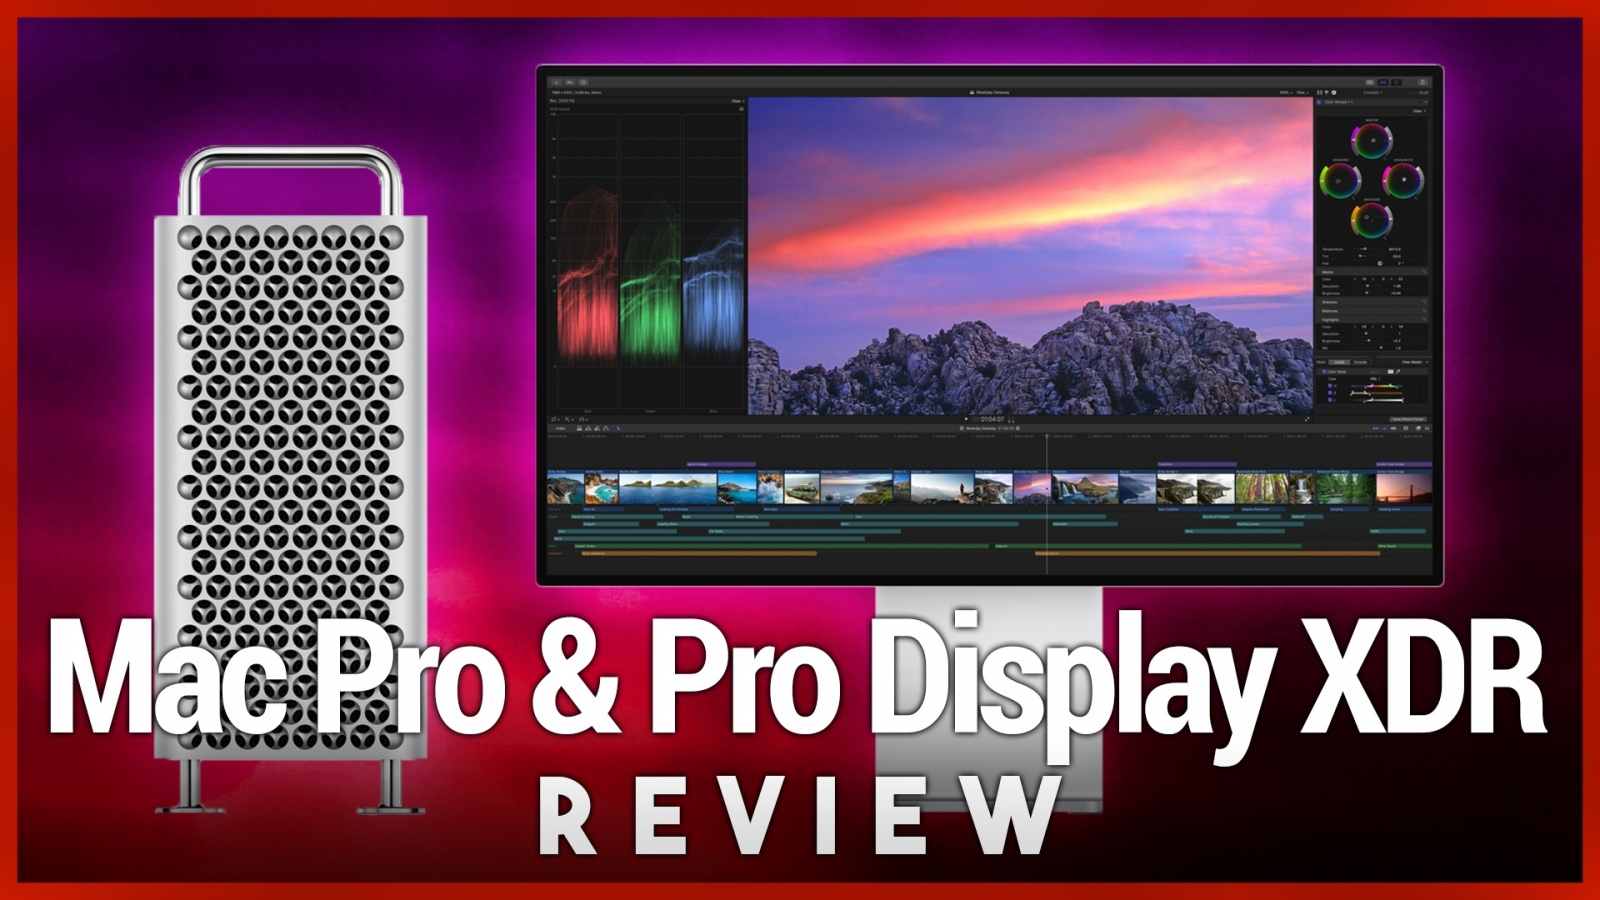 Hands-On Tech: Apple Mac Pro & Pro Display XDR Review